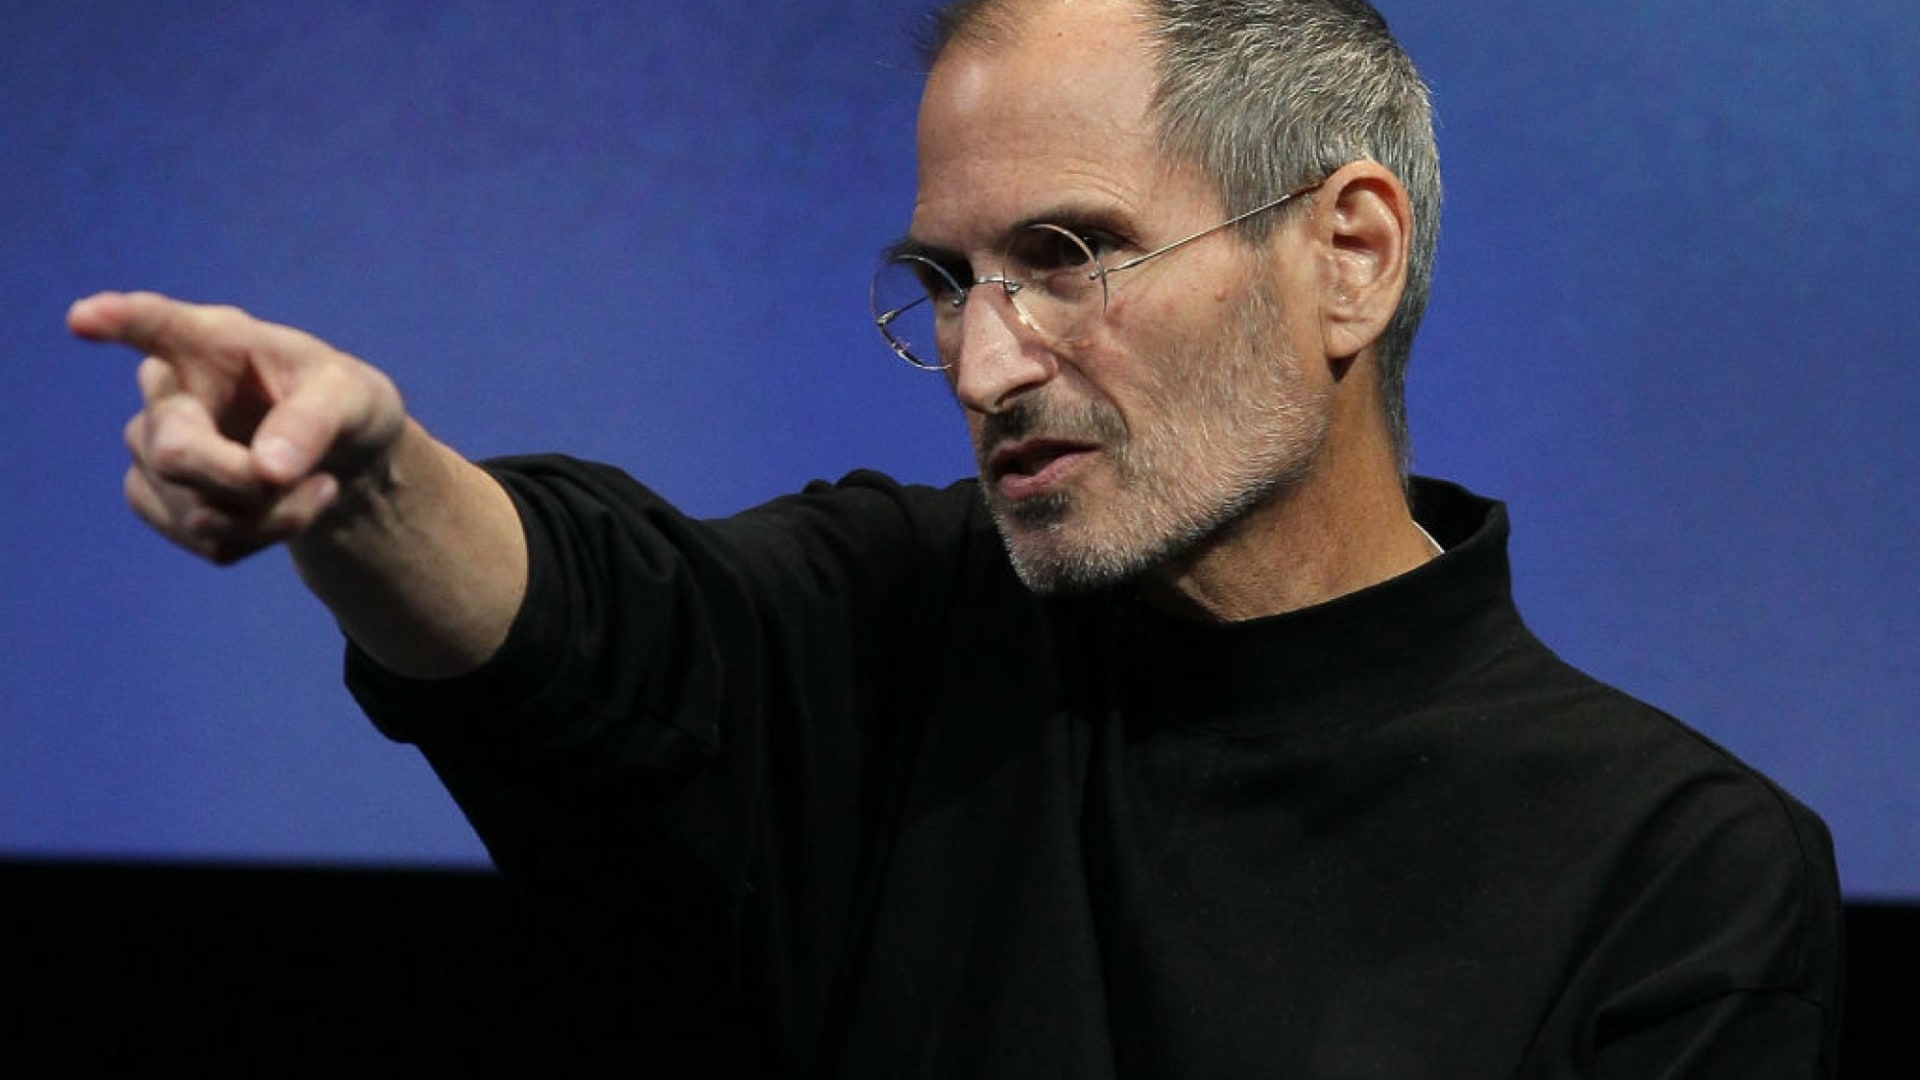 15 Years Ago, Steve Jobs Perfectly Summed Up One of the Biggest Lessons of 2020